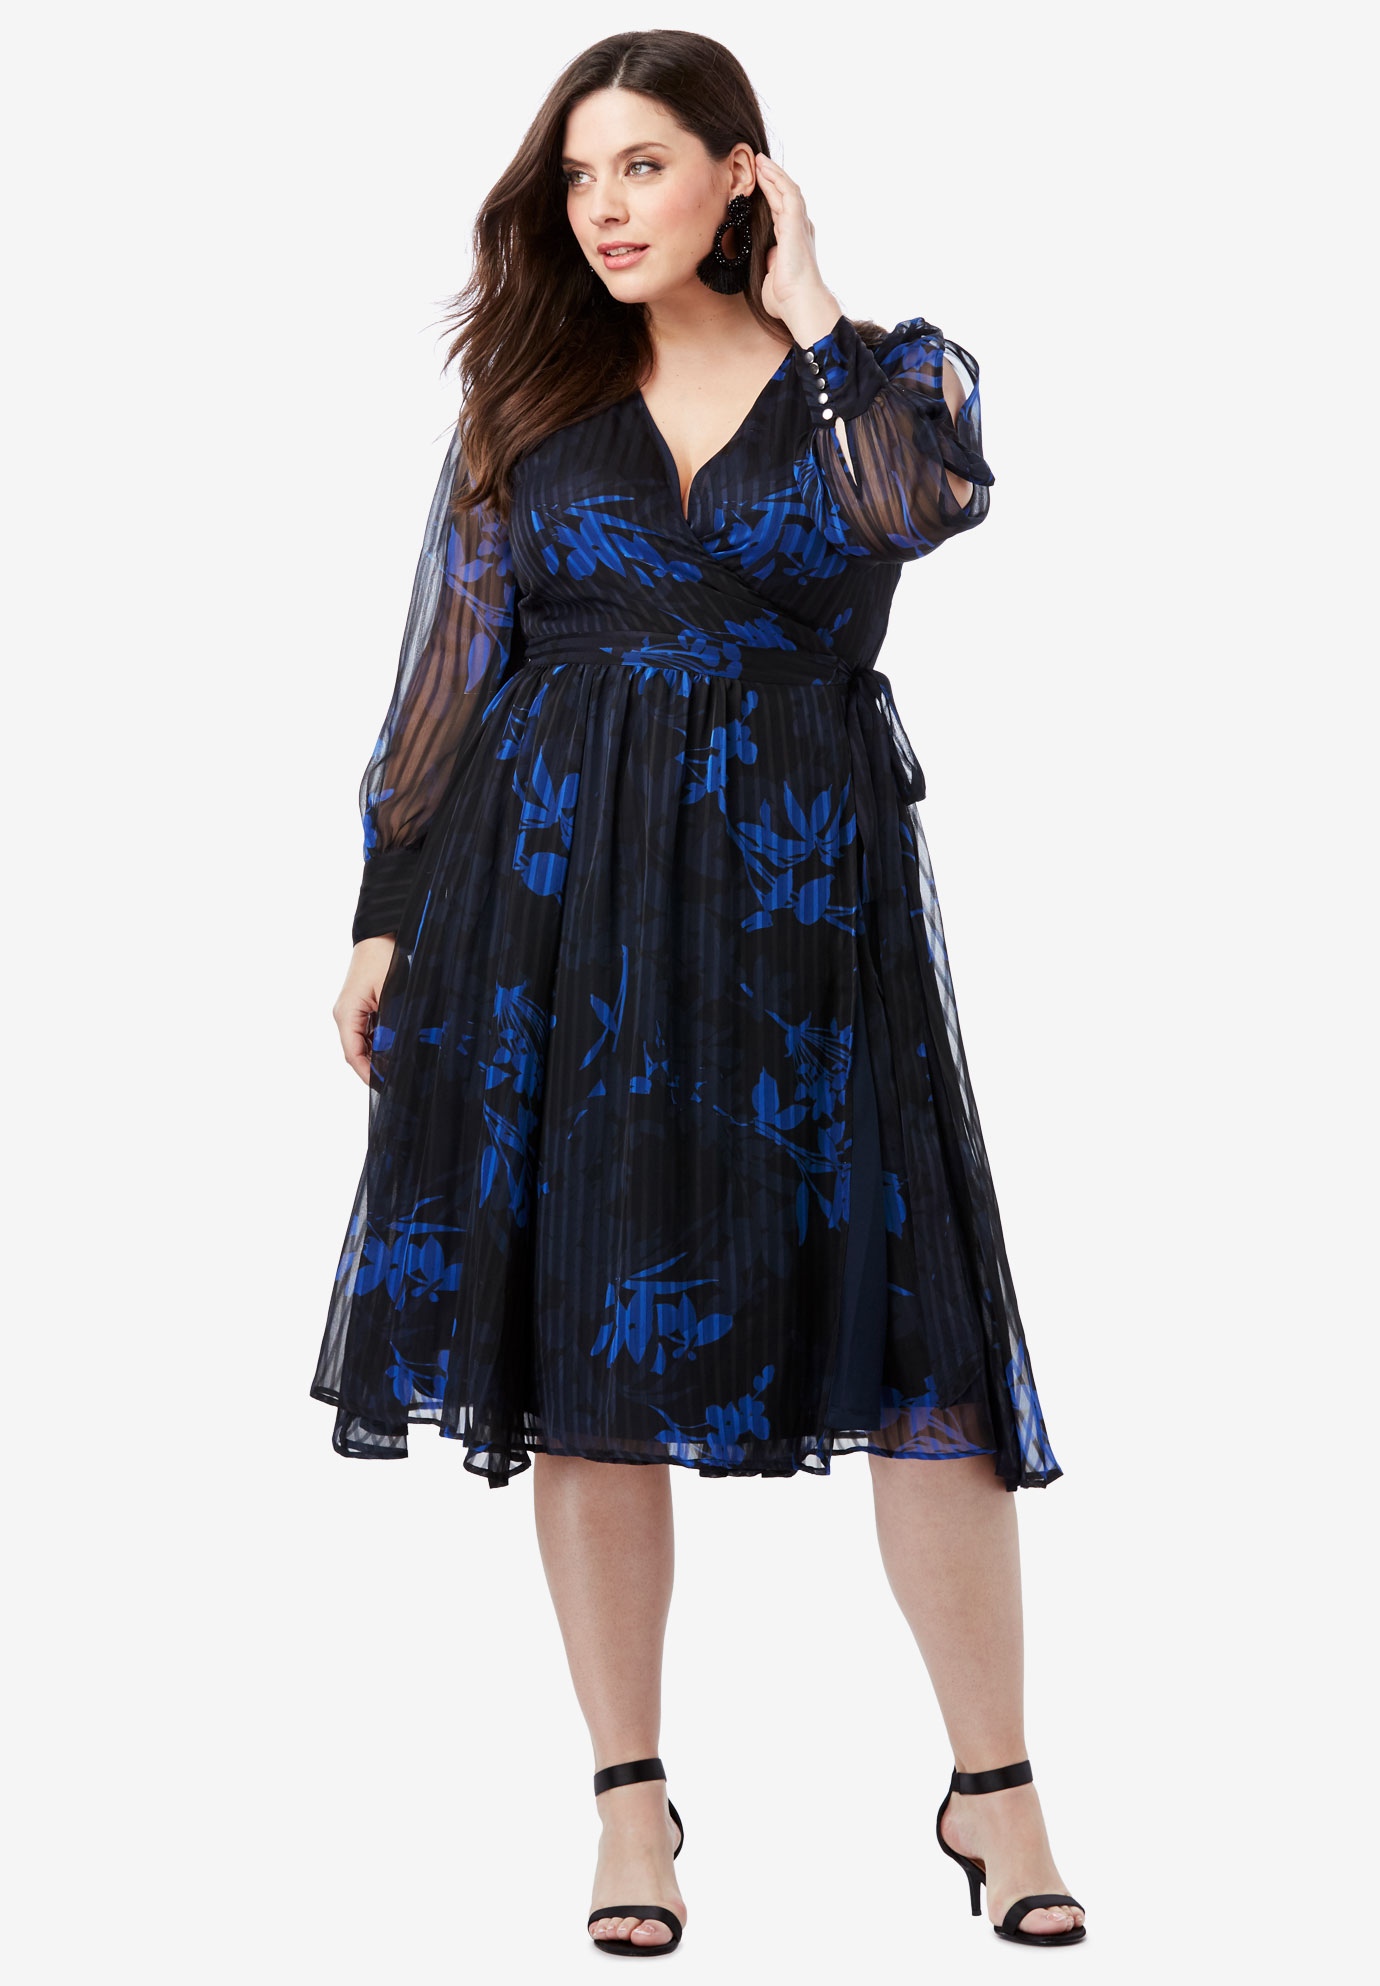 835b4a78a8b05 Burnout Wrap Dress with Blouson Sleeves| Plus Size Work Dresses ...